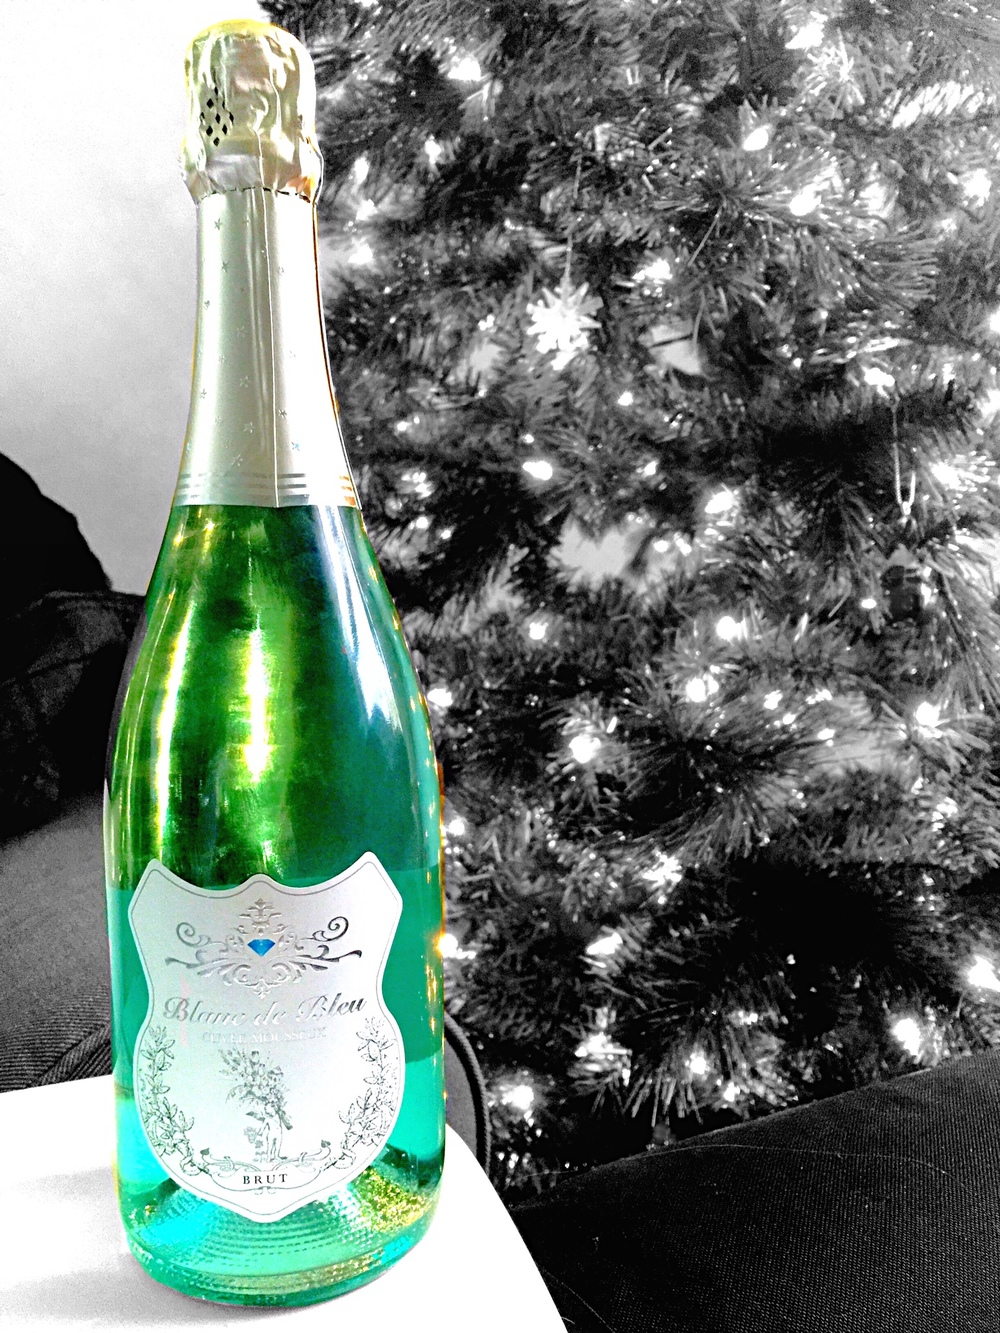 Celebrate the new year with some Blanc de bleu sparkling chardonnay